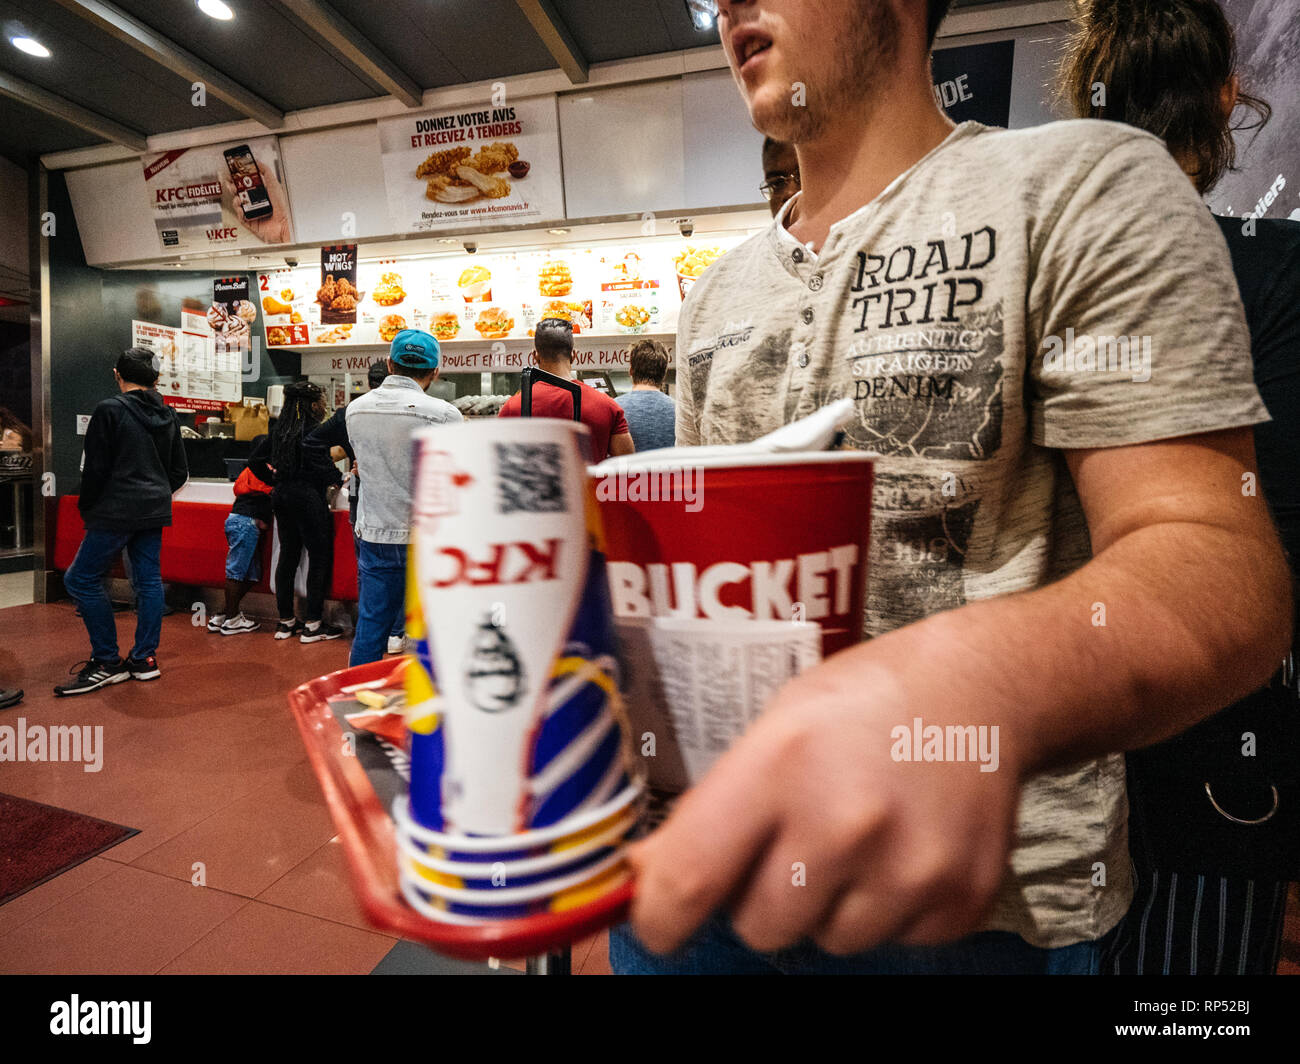 PARIS, FRANCE - OCT 13, 2018: man with lots of fast-food inside KFC Kentucky Fried Chicken restaurant Stock Photo